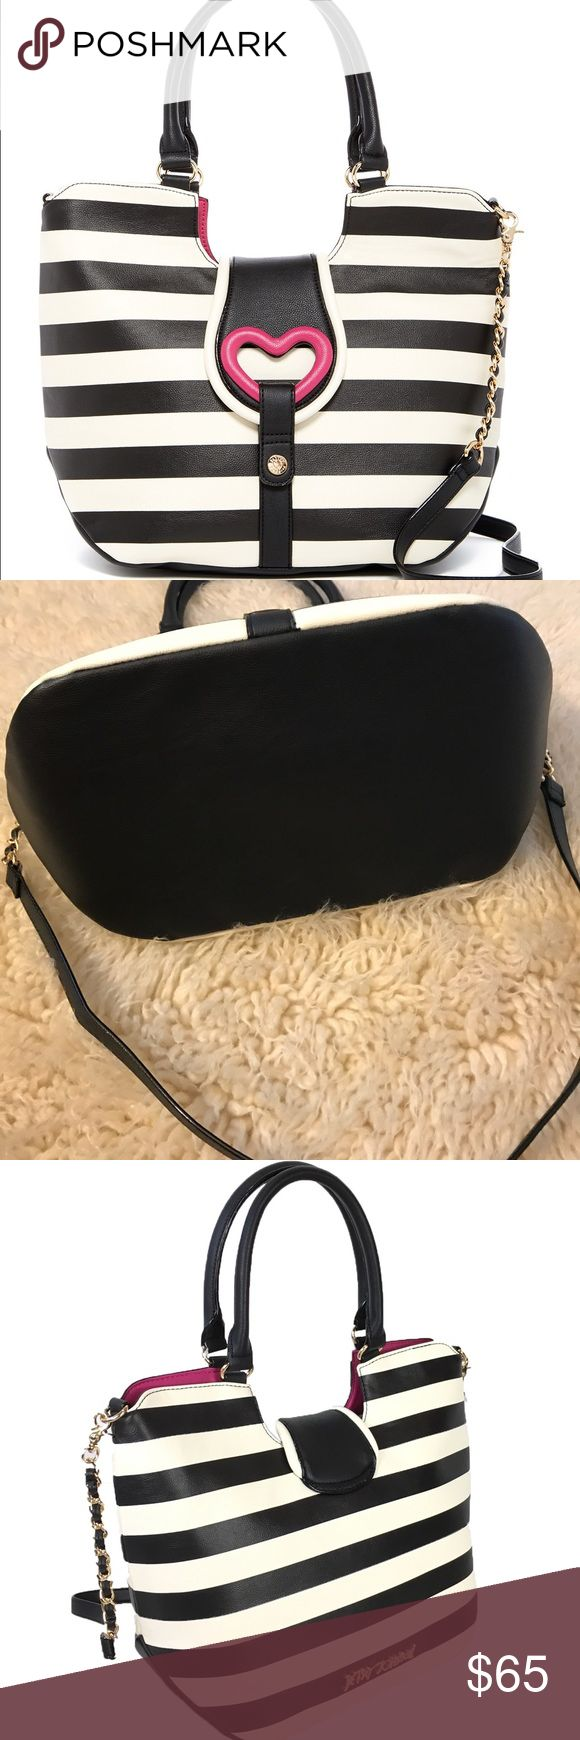 """Betsey Johnson Loop Di Loo Tote EUC - used for like 4 days, no flaws - like new! Details: - Dual rolled top handles - Detachable partial chain shoulder strap - Foldover flap with magnetic snap closure - Exterior features heart accent and stripe detail - Interior features wall zip pocket and 2 media pockets - Approx. 12 3/4"""" H x 16"""" W x 7.5"""" D - Approx. 9.5"""" handle drop, 24"""" strap drop - Betsey Johnson Bags Totes"""